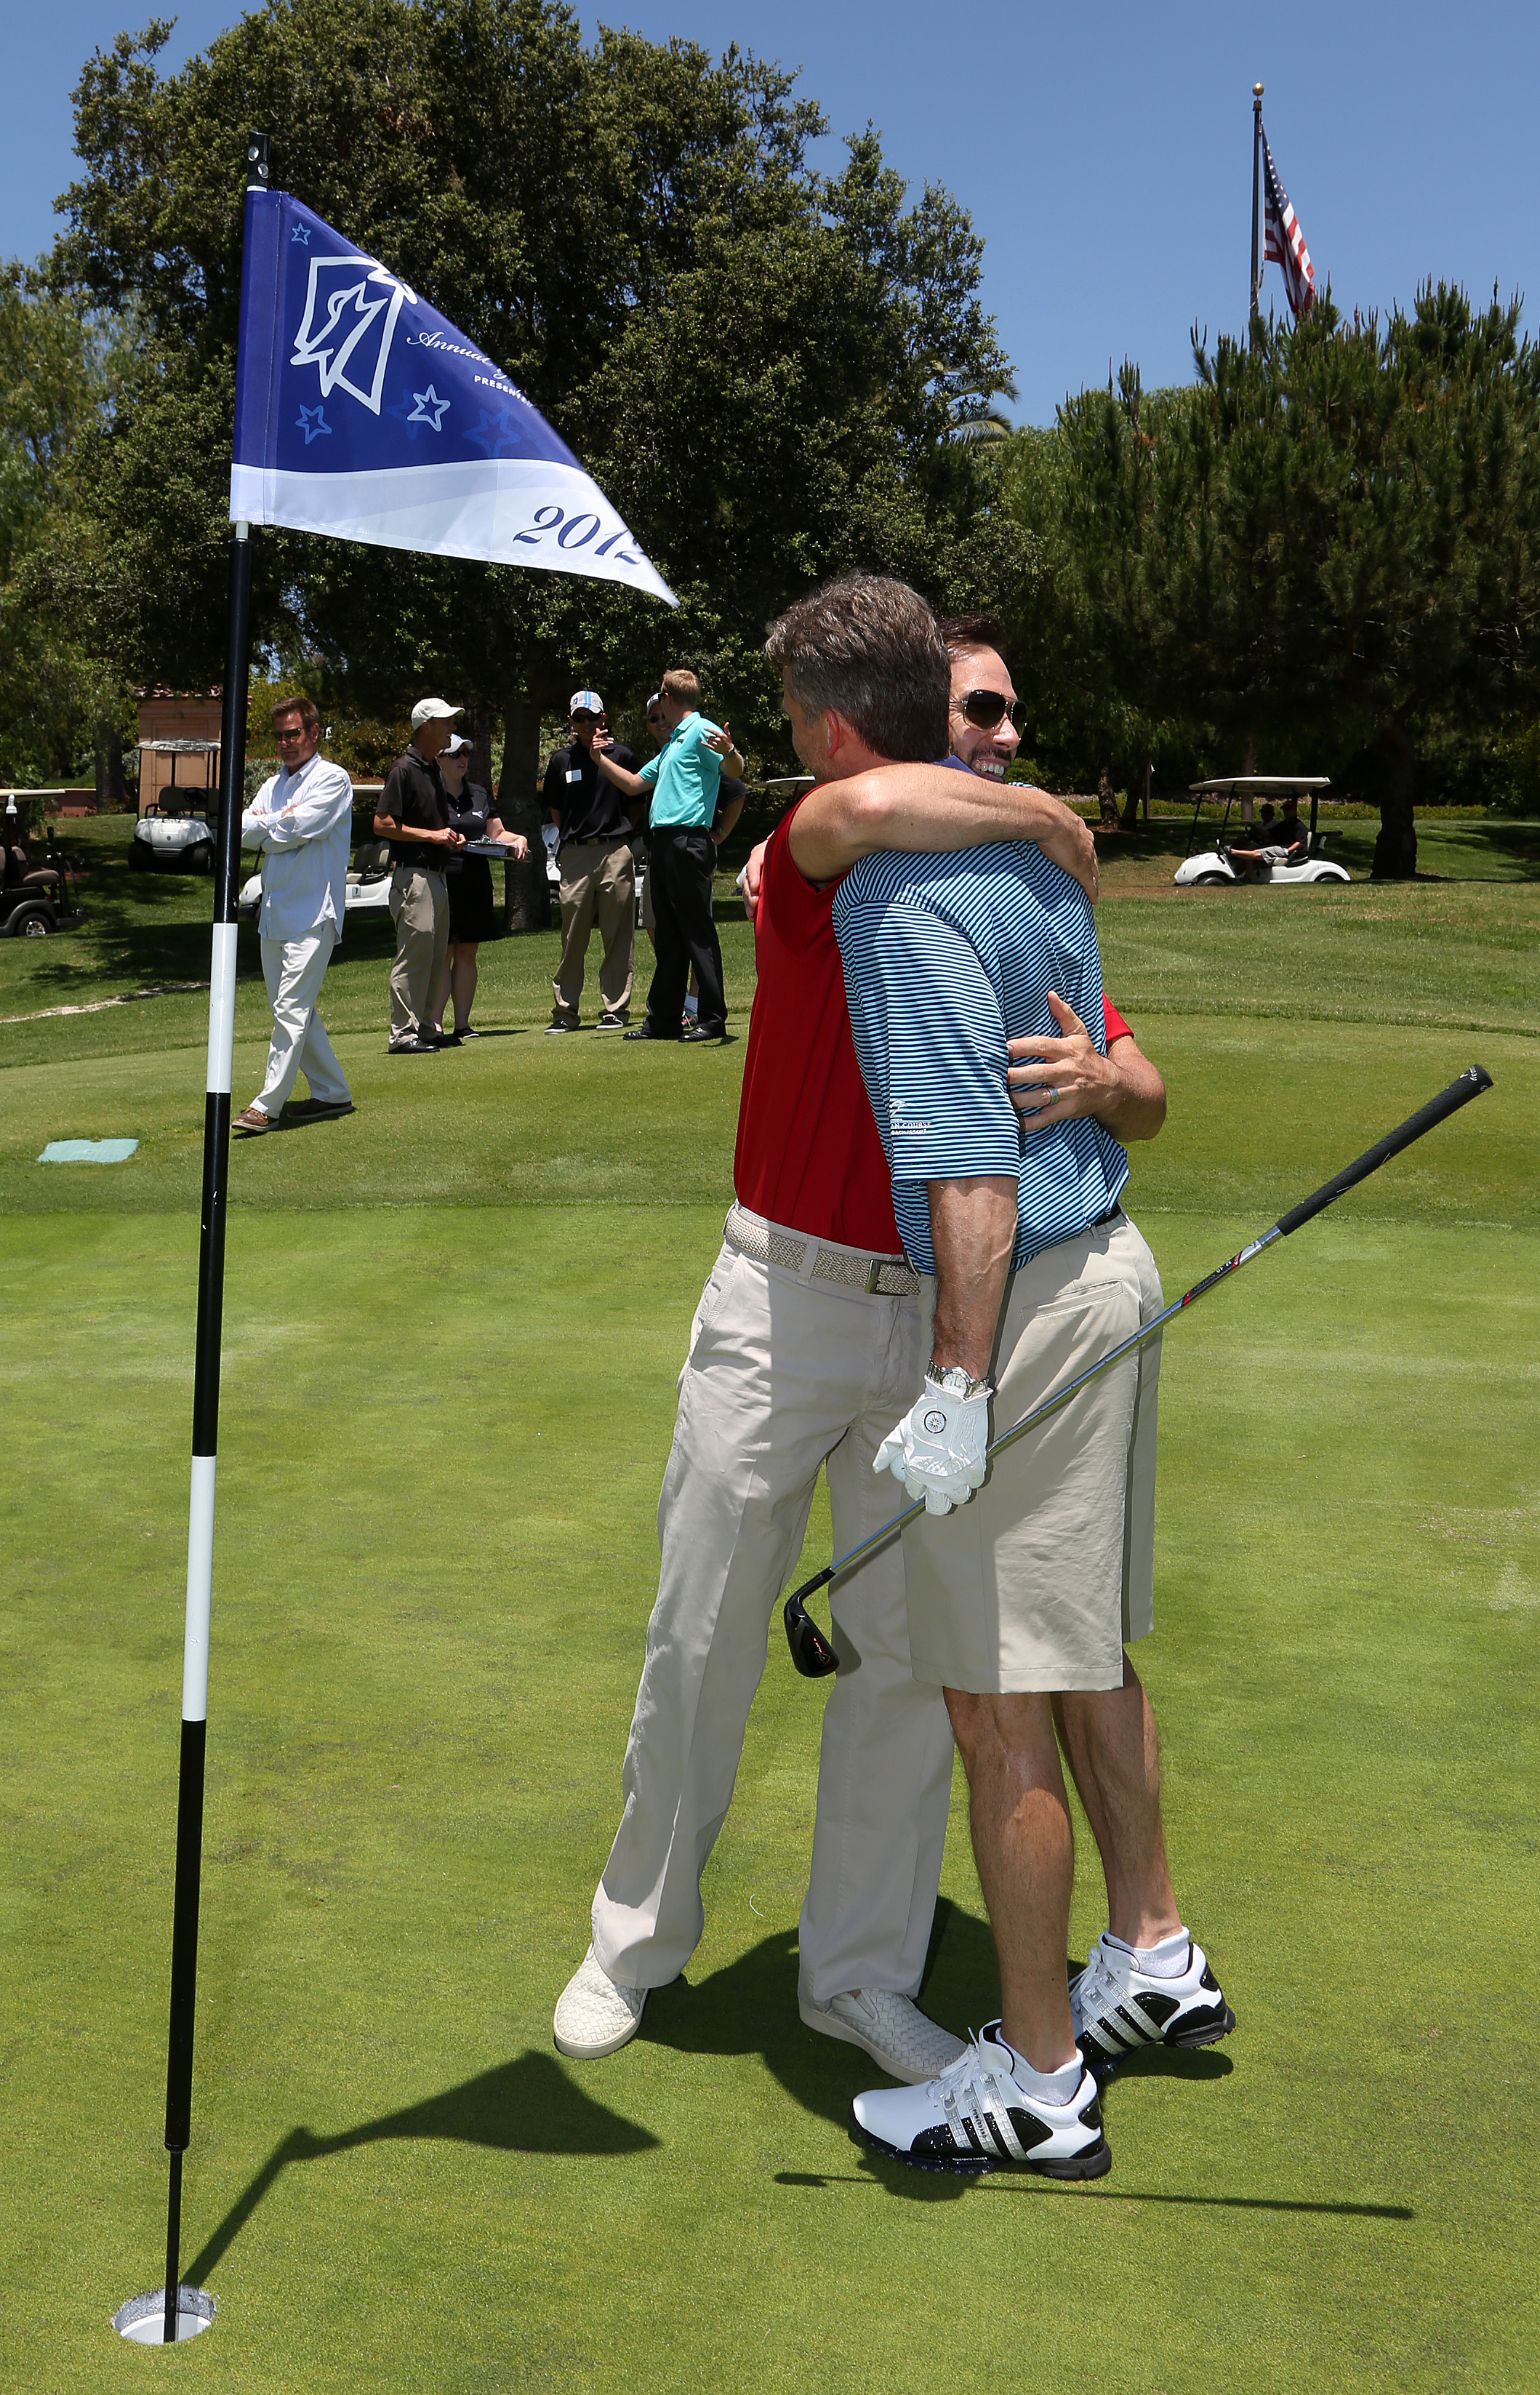 Jimmie congratulates NASCAR CMO Steve Phelps after he got a Hole in One and won a car! (San Diego, 2012)